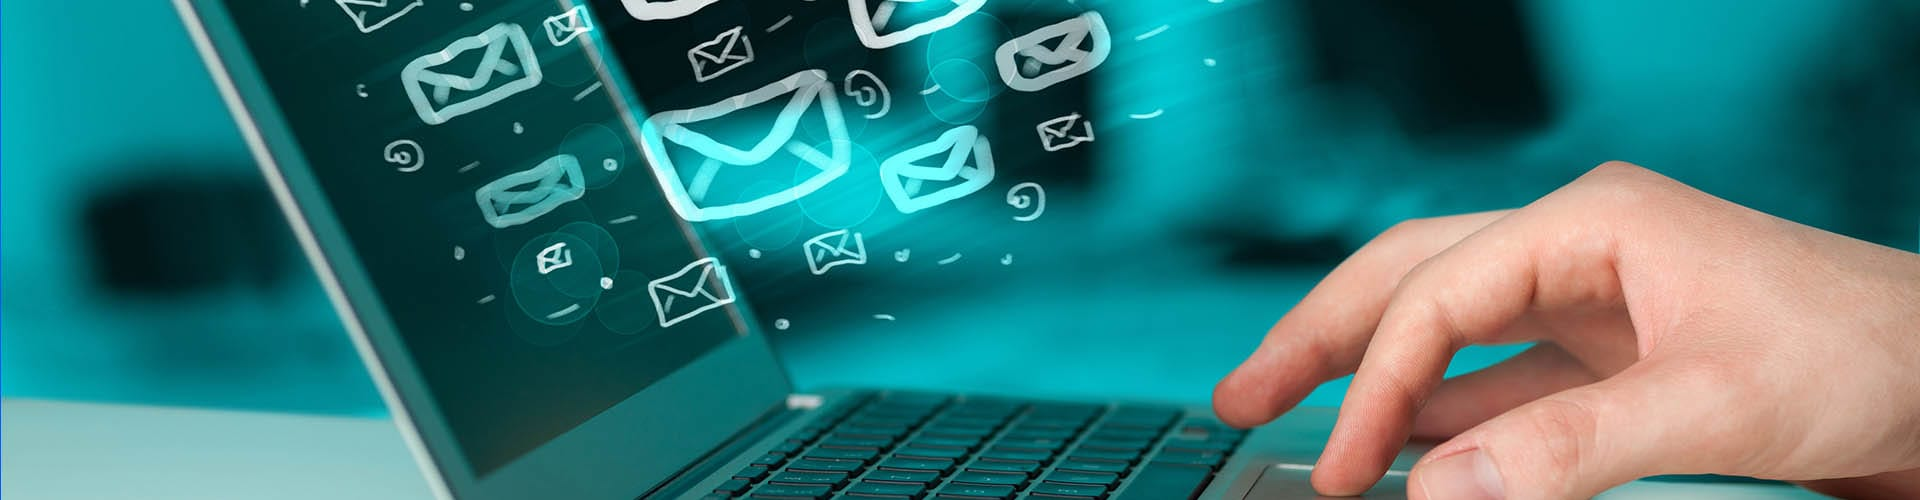 email marketing with ncr counterpoint